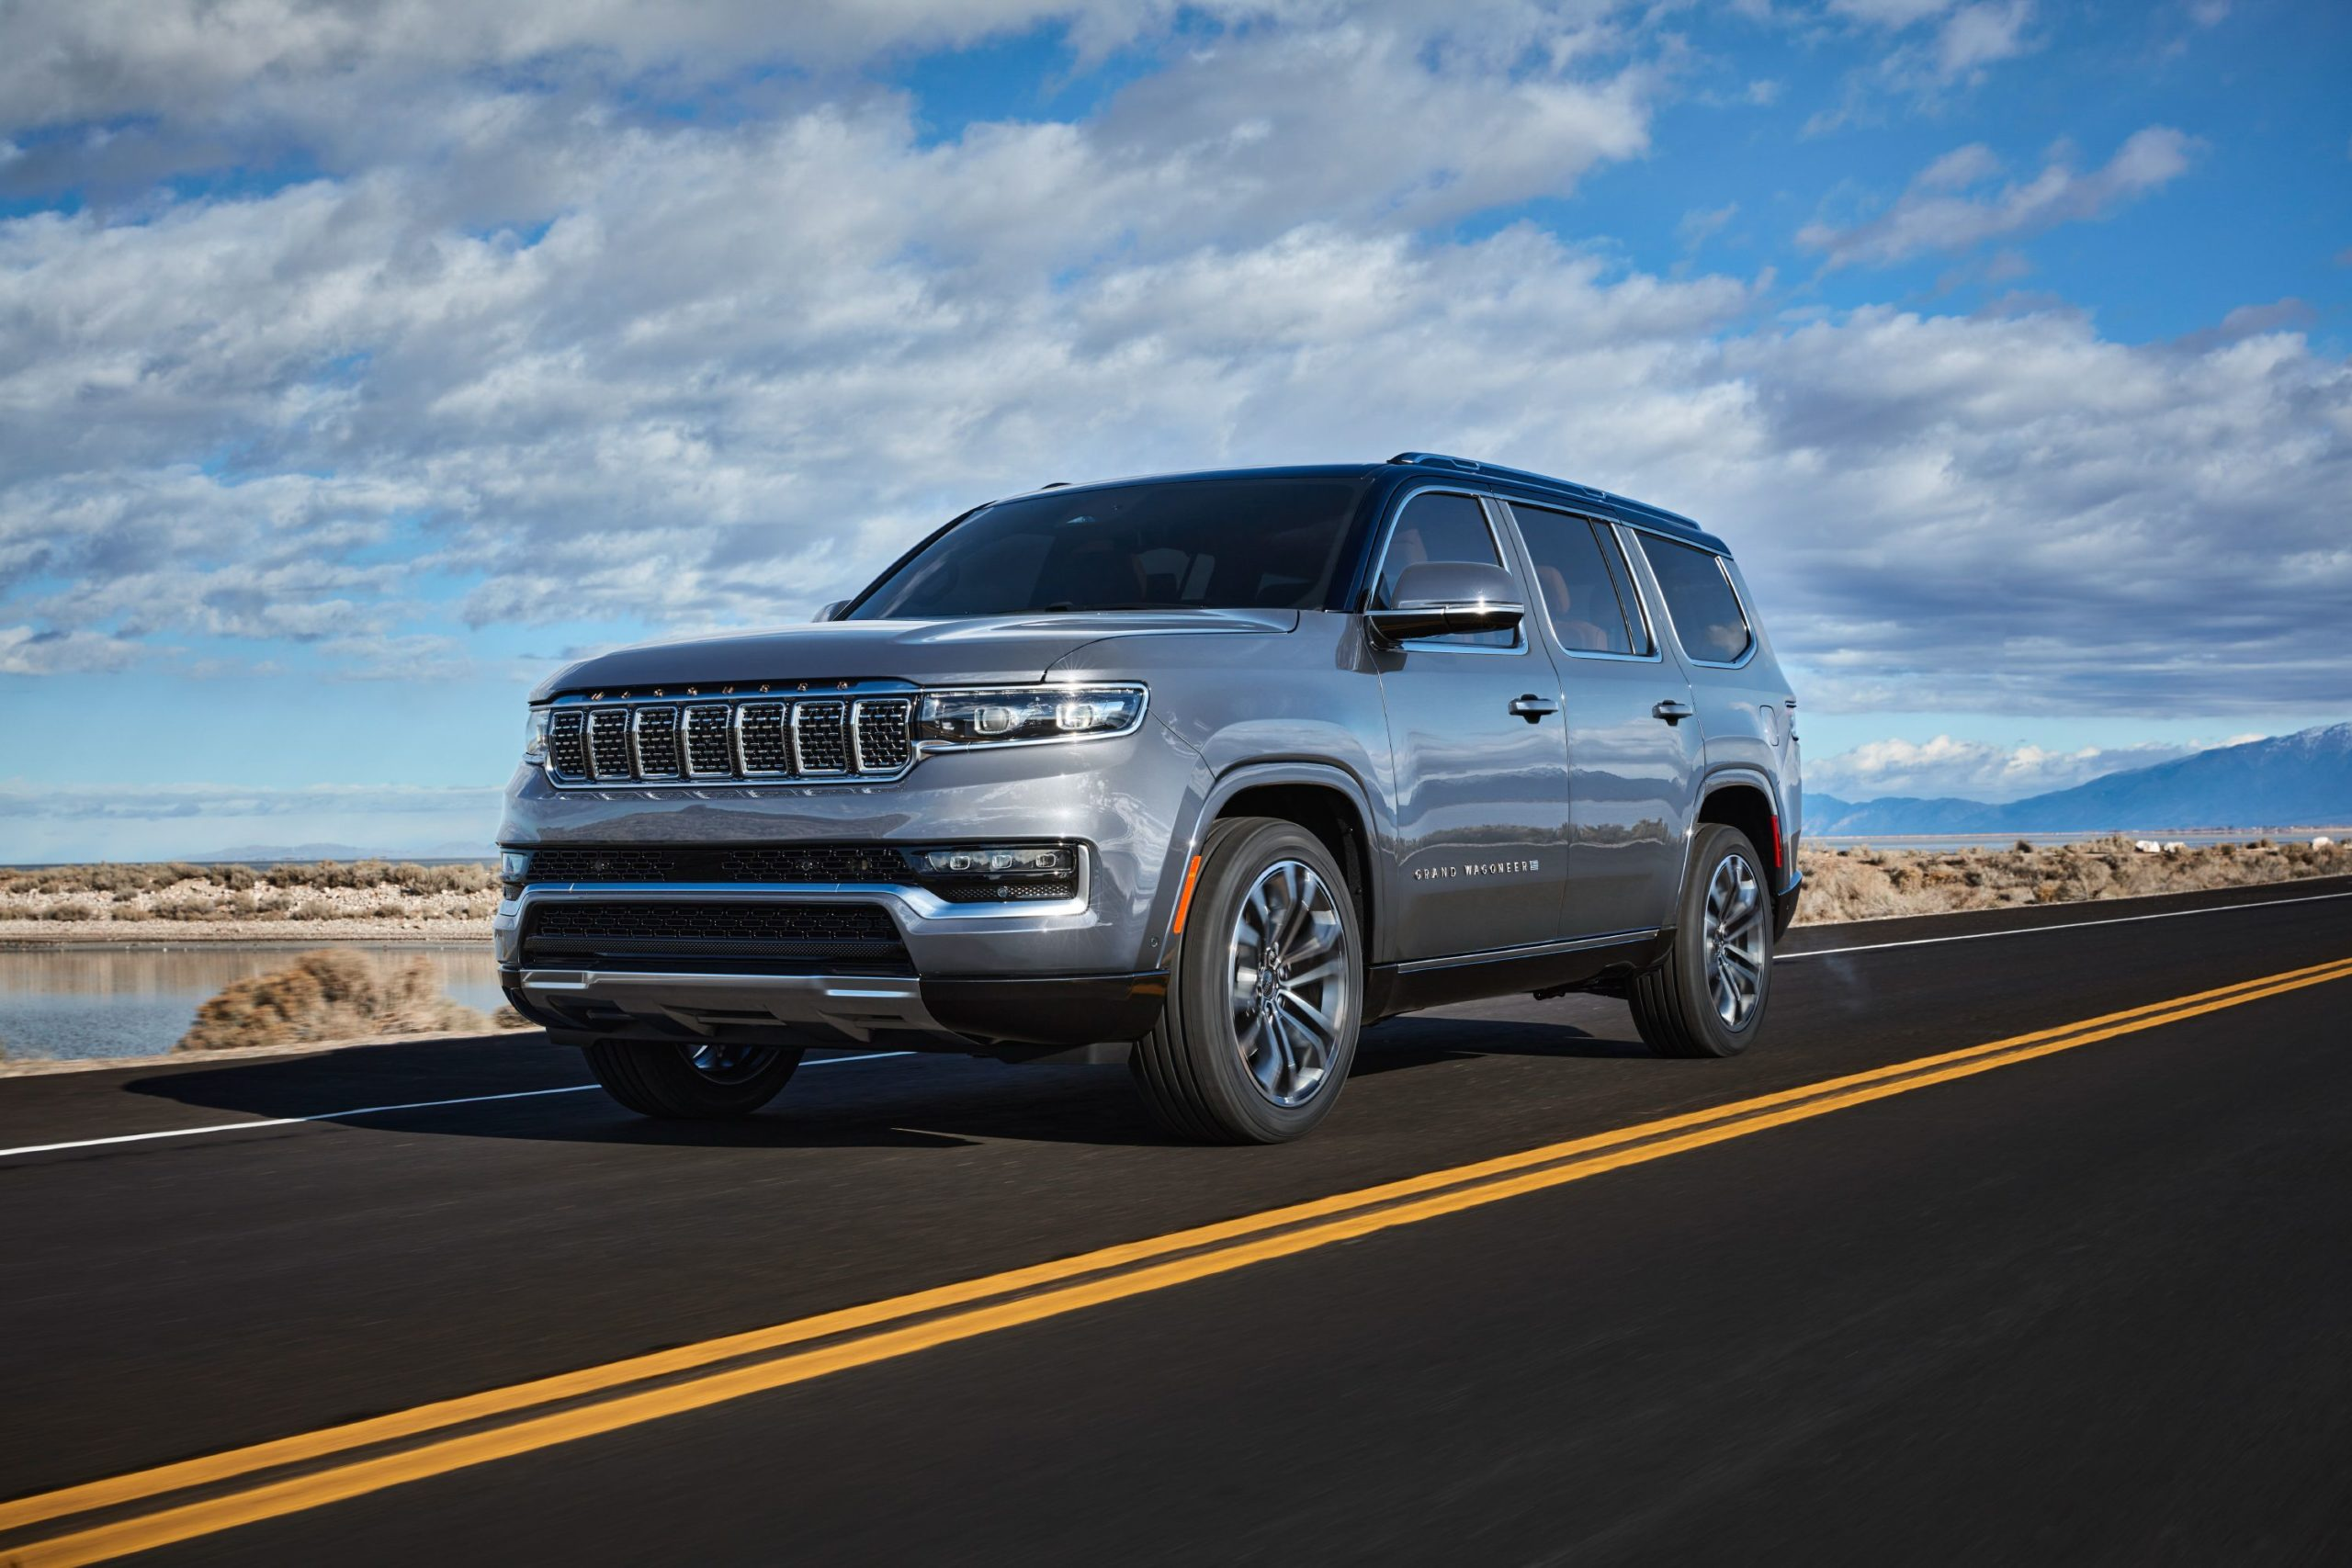 2022 Jeep Wagoneer, Grand Wagoneer Are Back as Massive Luxury SUVs